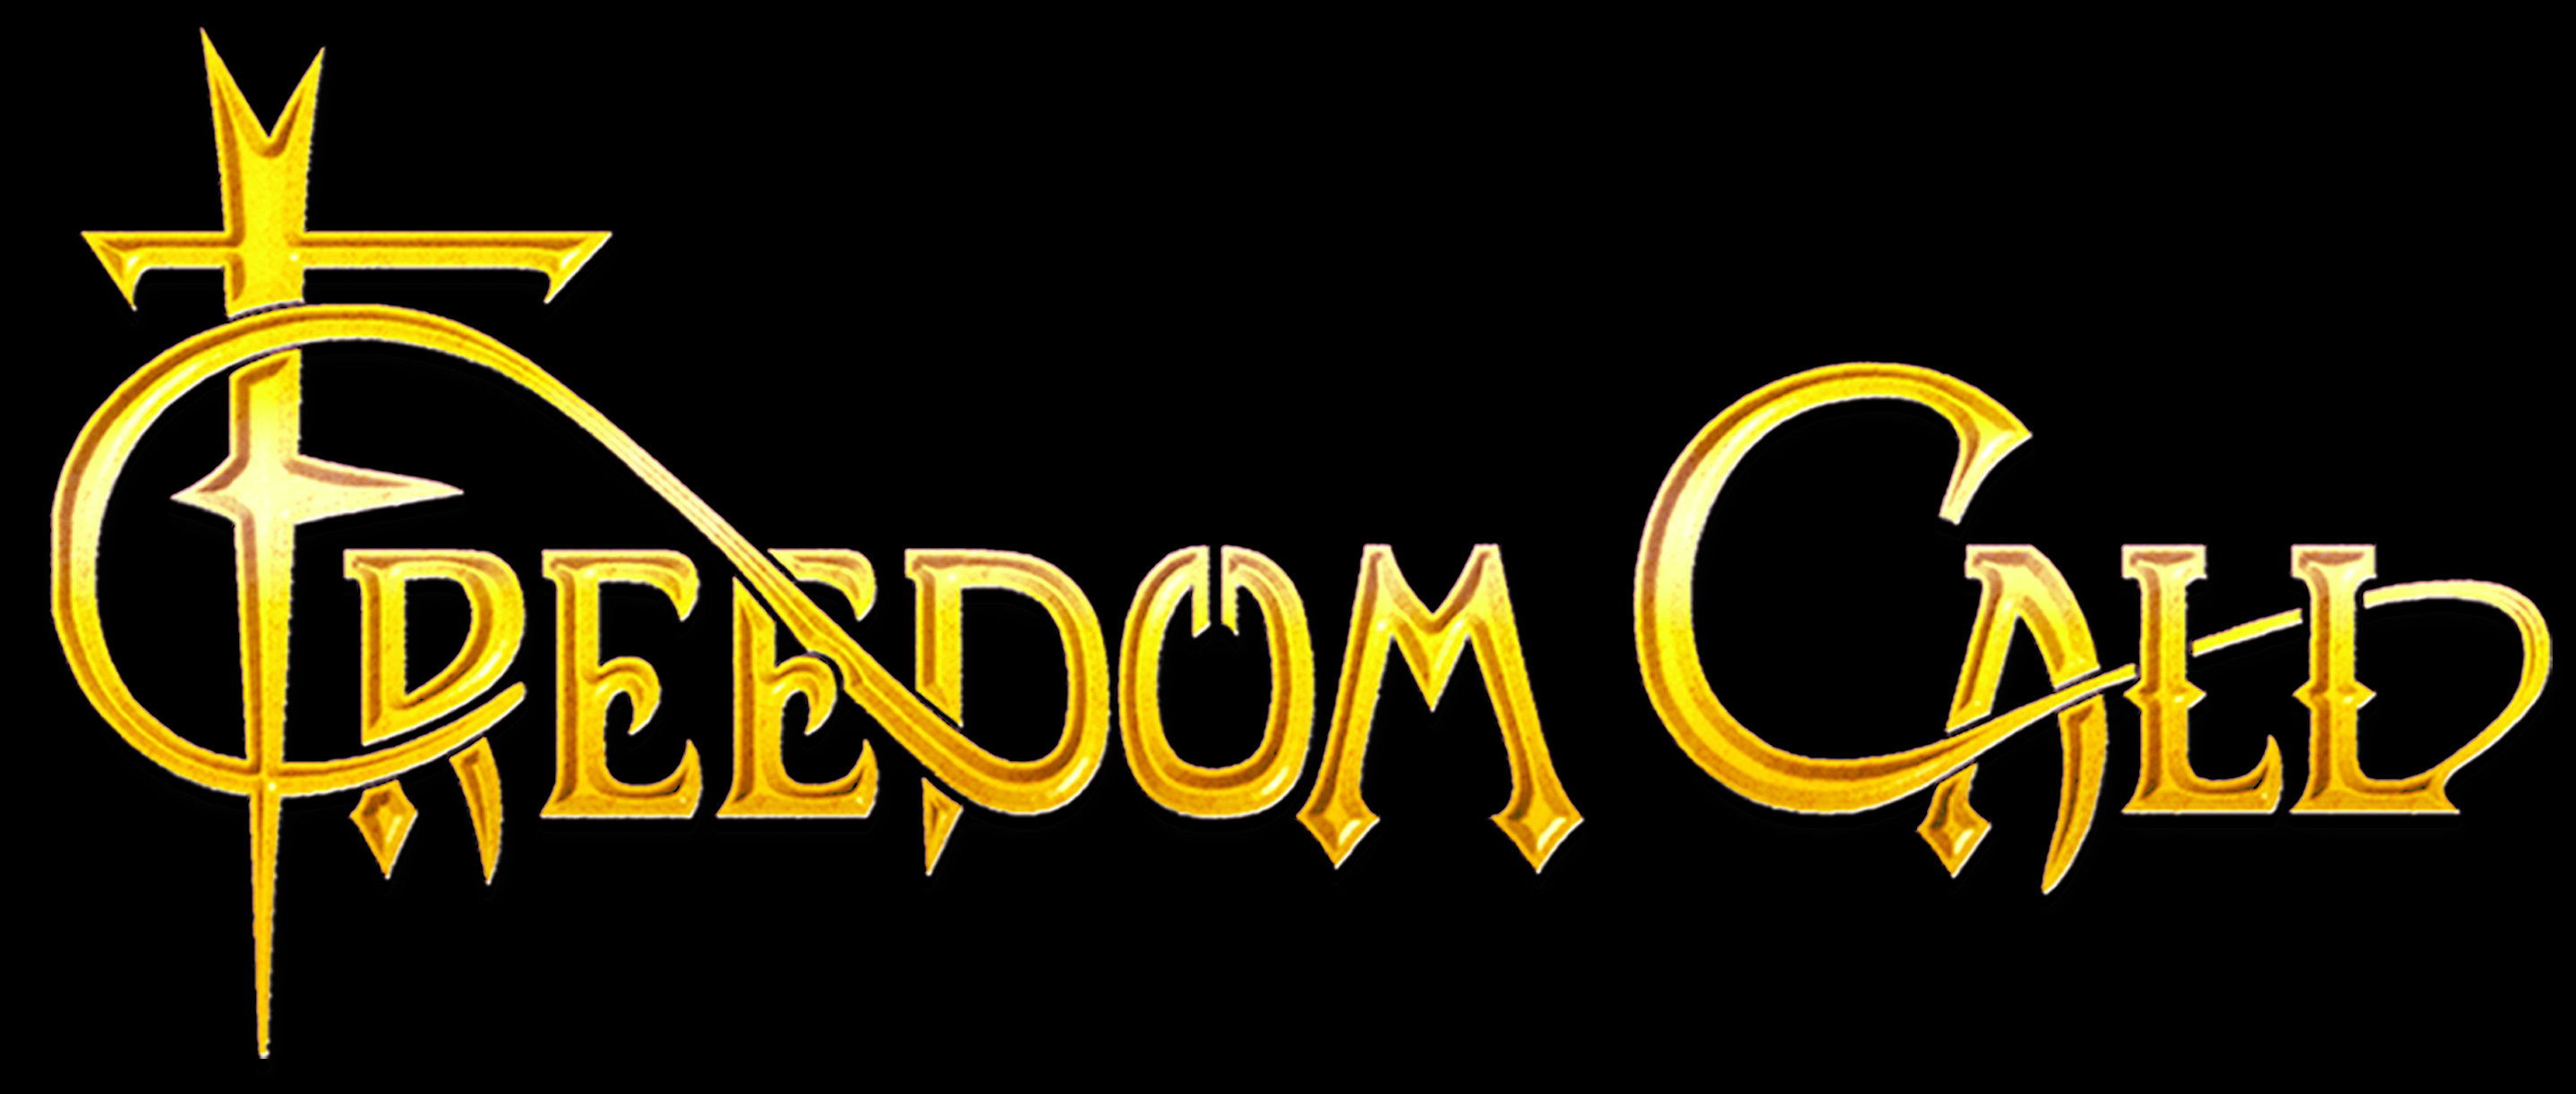 File:FreedomCall-Logo-Gold-schwarz.jpg - Wikimedia Commons